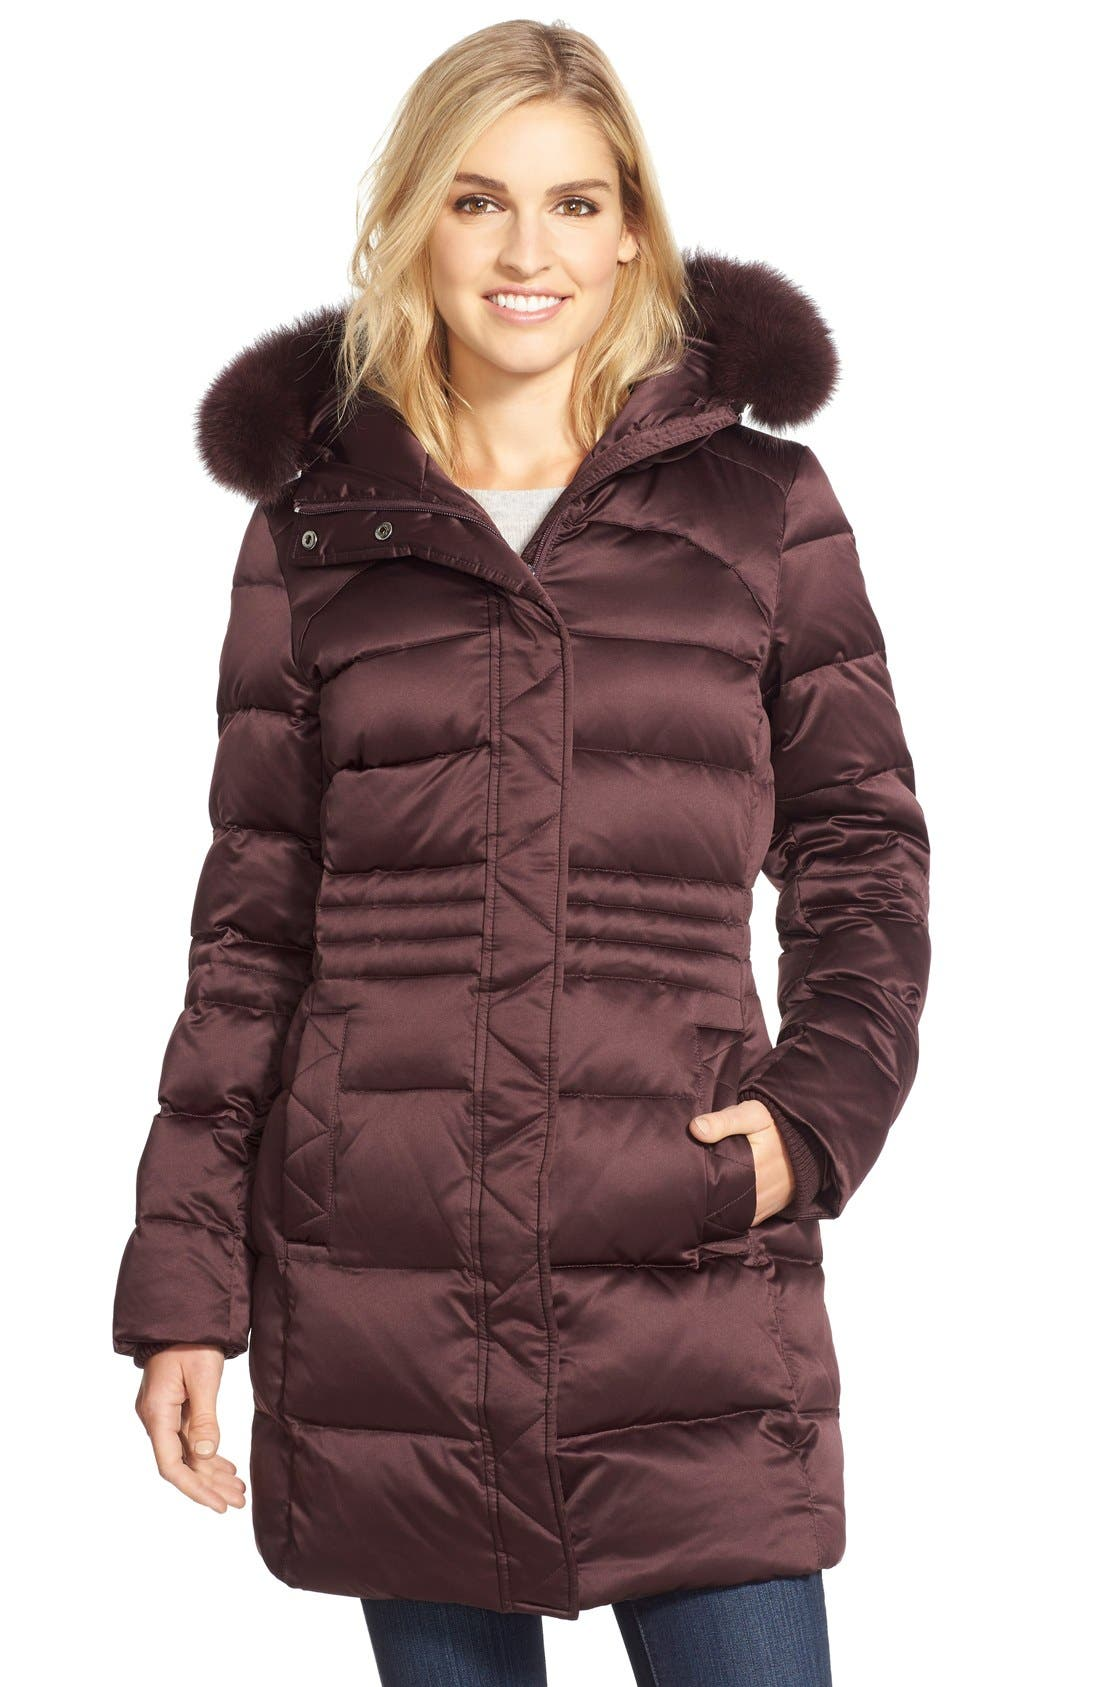 Down Coat with Genuine Fox Fur Trim,                             Main thumbnail 3, color,